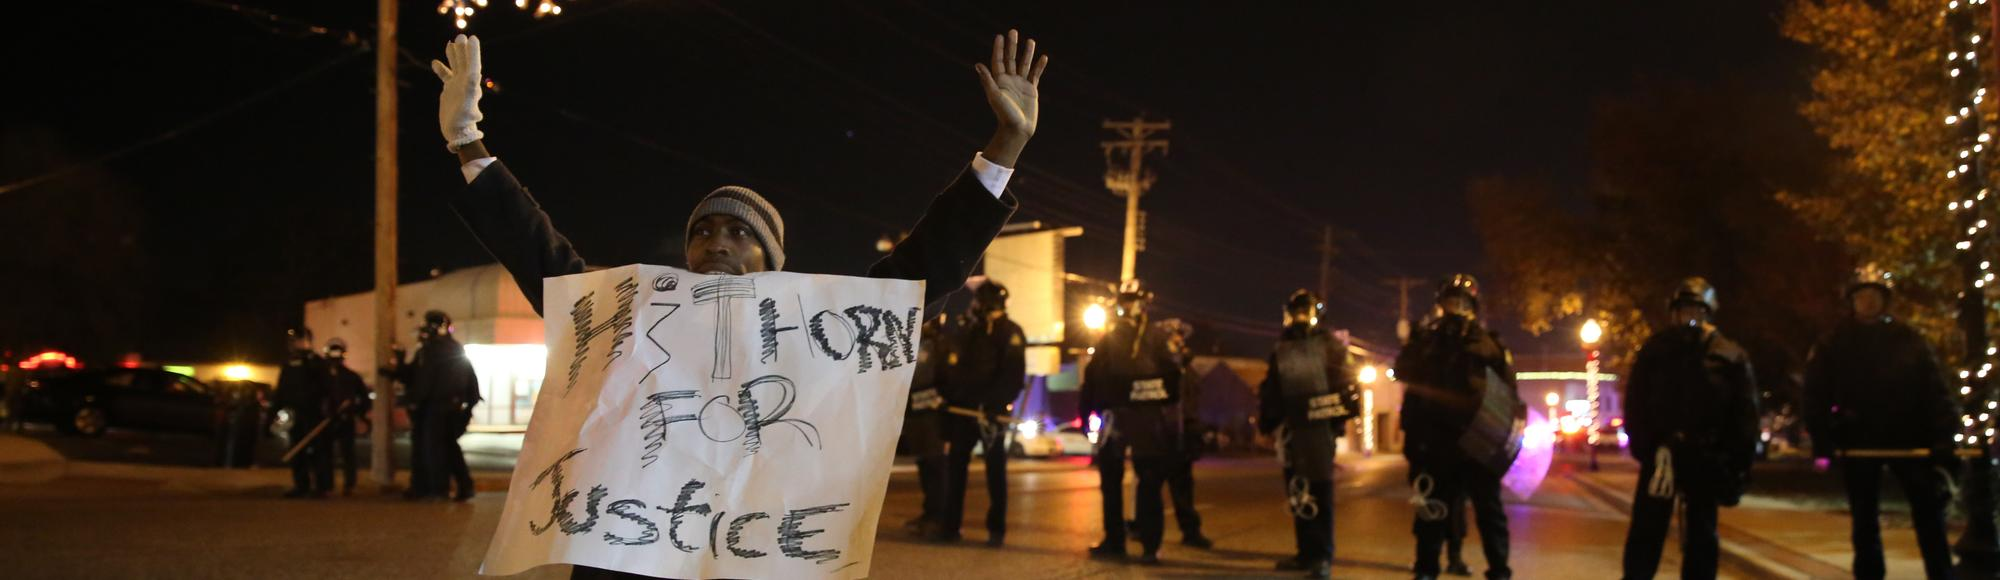 Ferguson Activists Demand Action, End to Police Militarization After Meeting With Obama